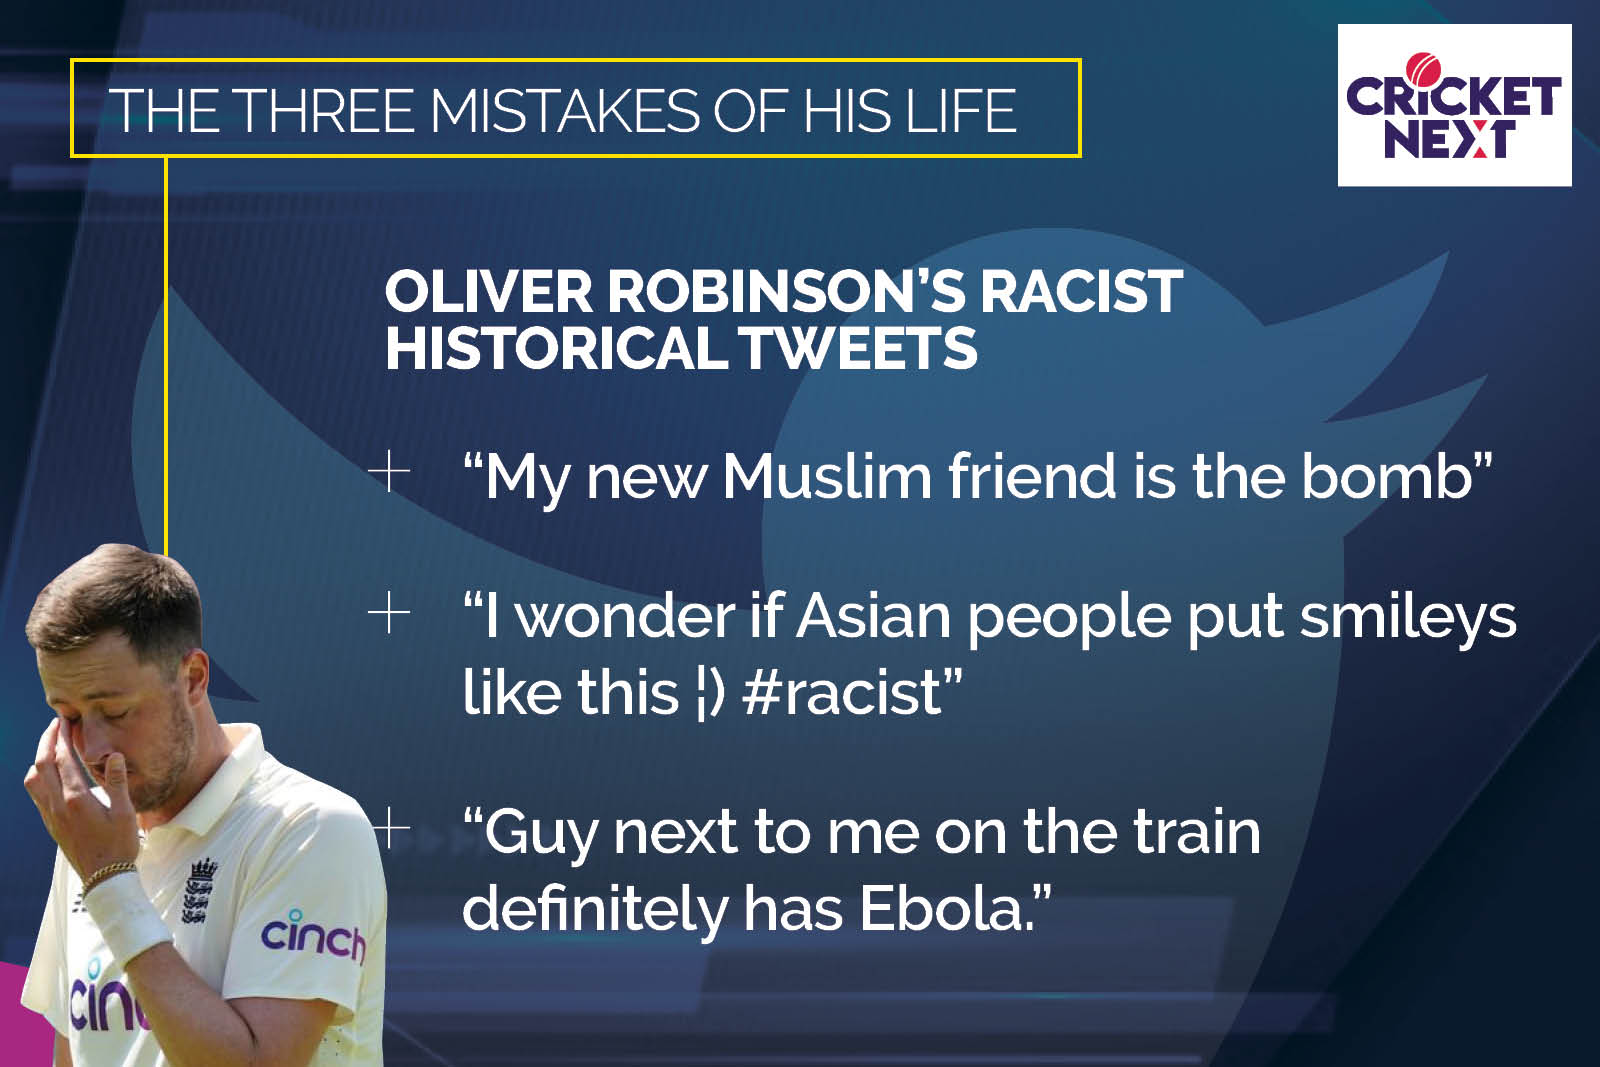 The Racism Social Media Storm That Has Hit English Cricket & Is Threatening To Spiral Out of Control thumbnail